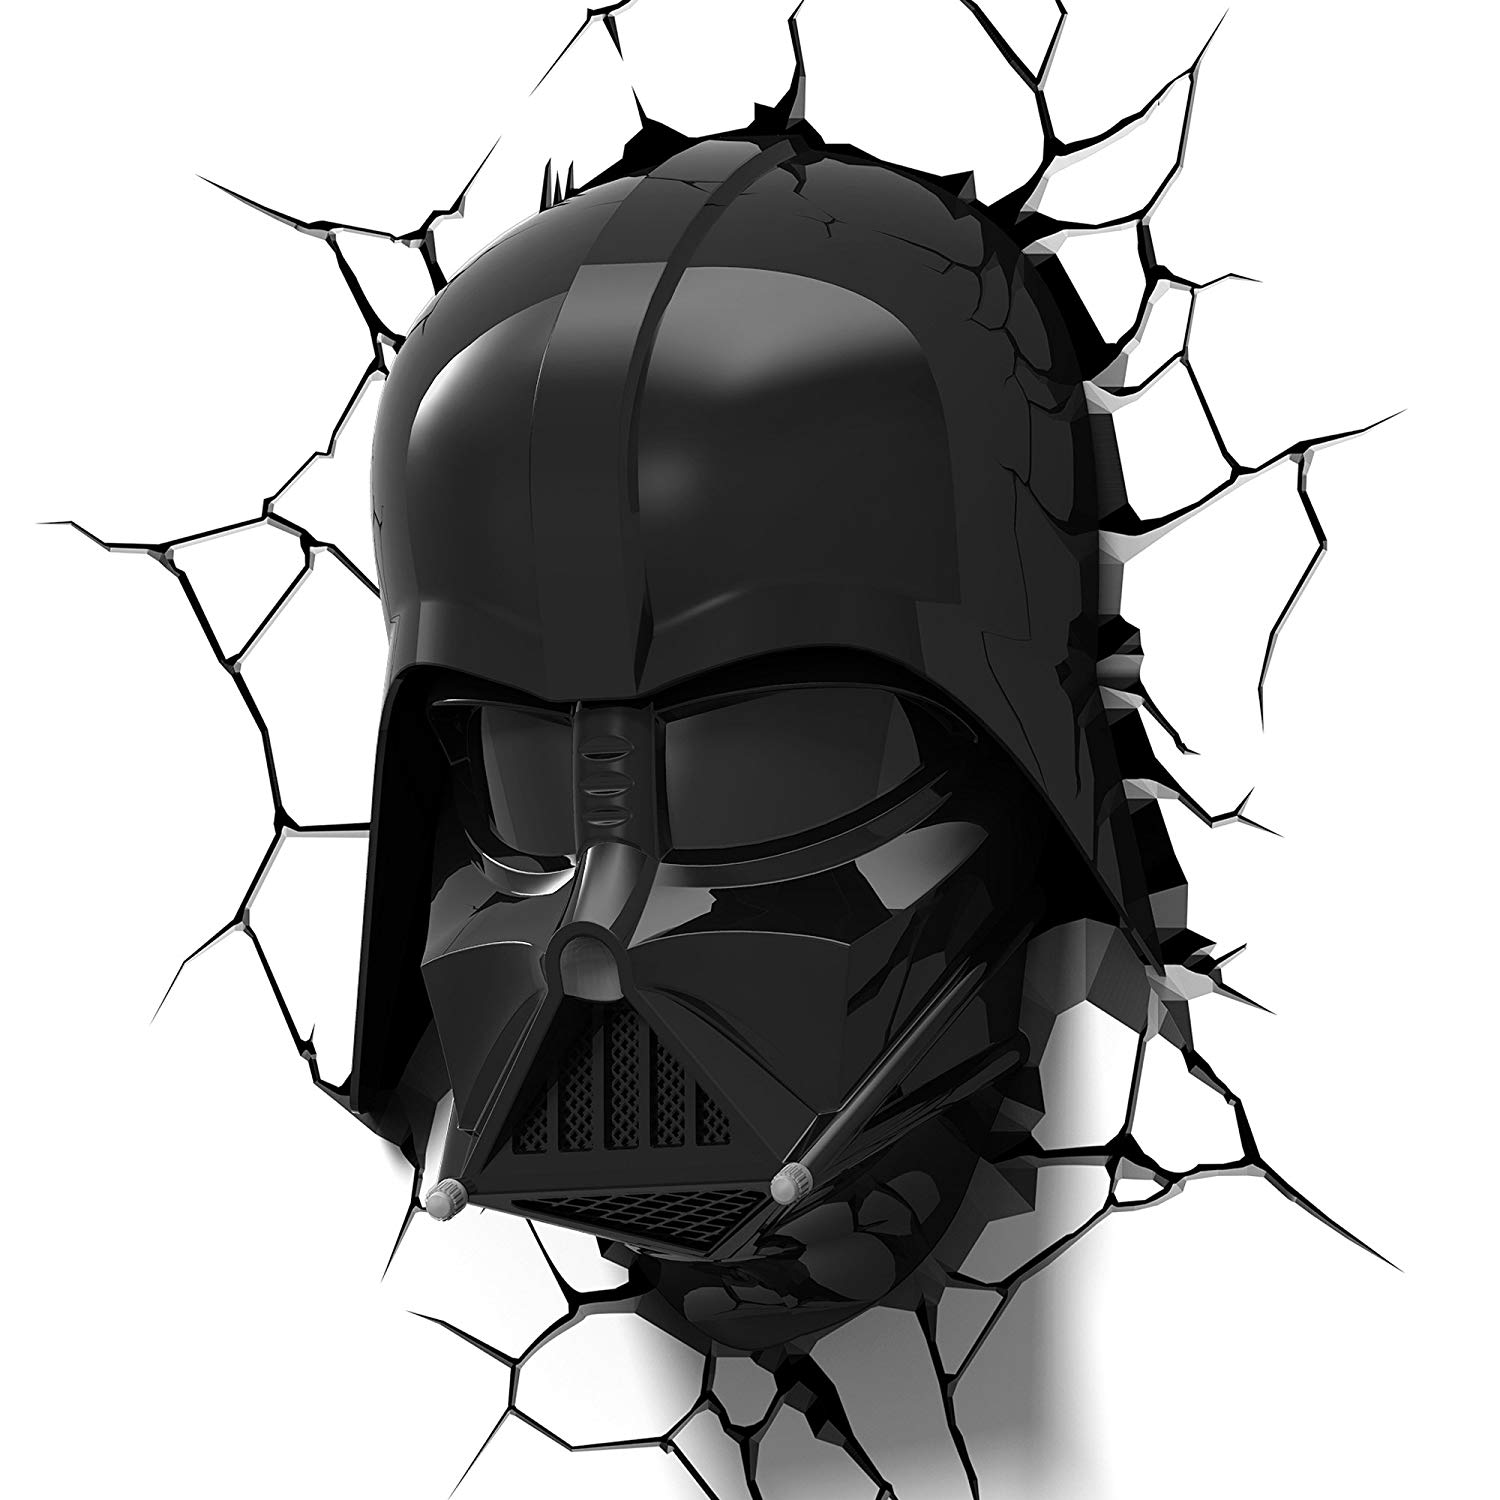 3dlightfx Star Wars Darth Vader Helmet 3d Deco Light Officially Licensed By 3d Light Fx By 3d Light Fx Walmart Com Walmart Com